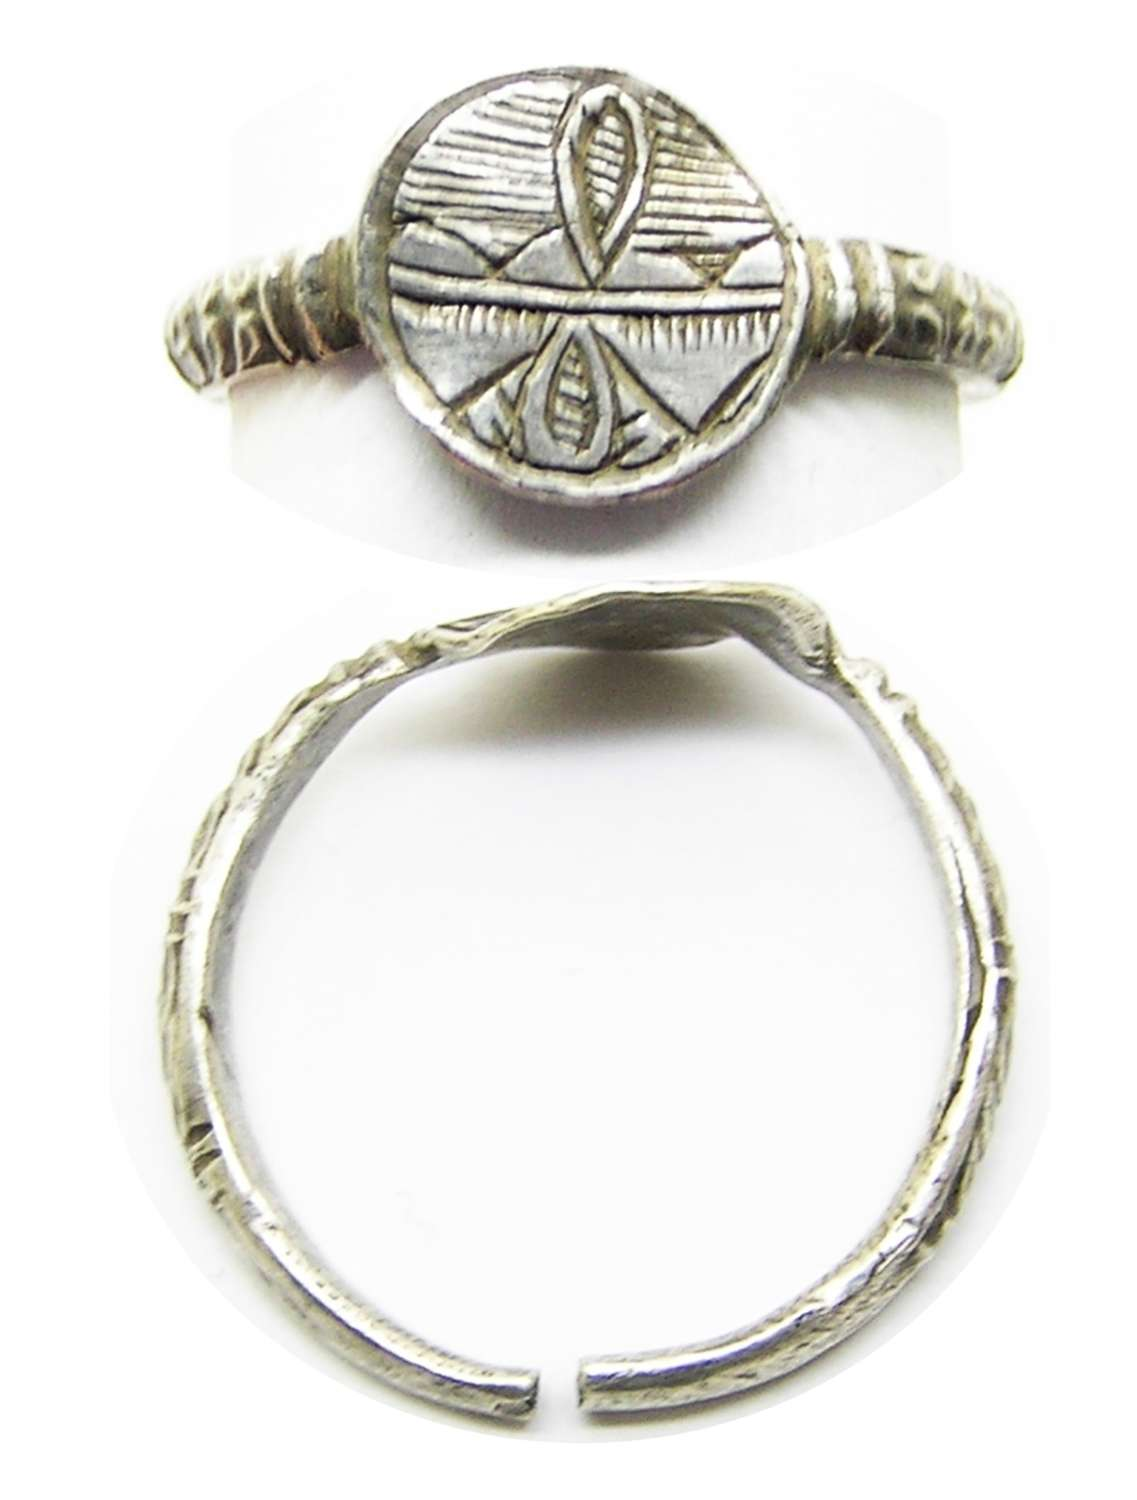 Renaissance silver finger ring pair of hearts joined by a lovers knot